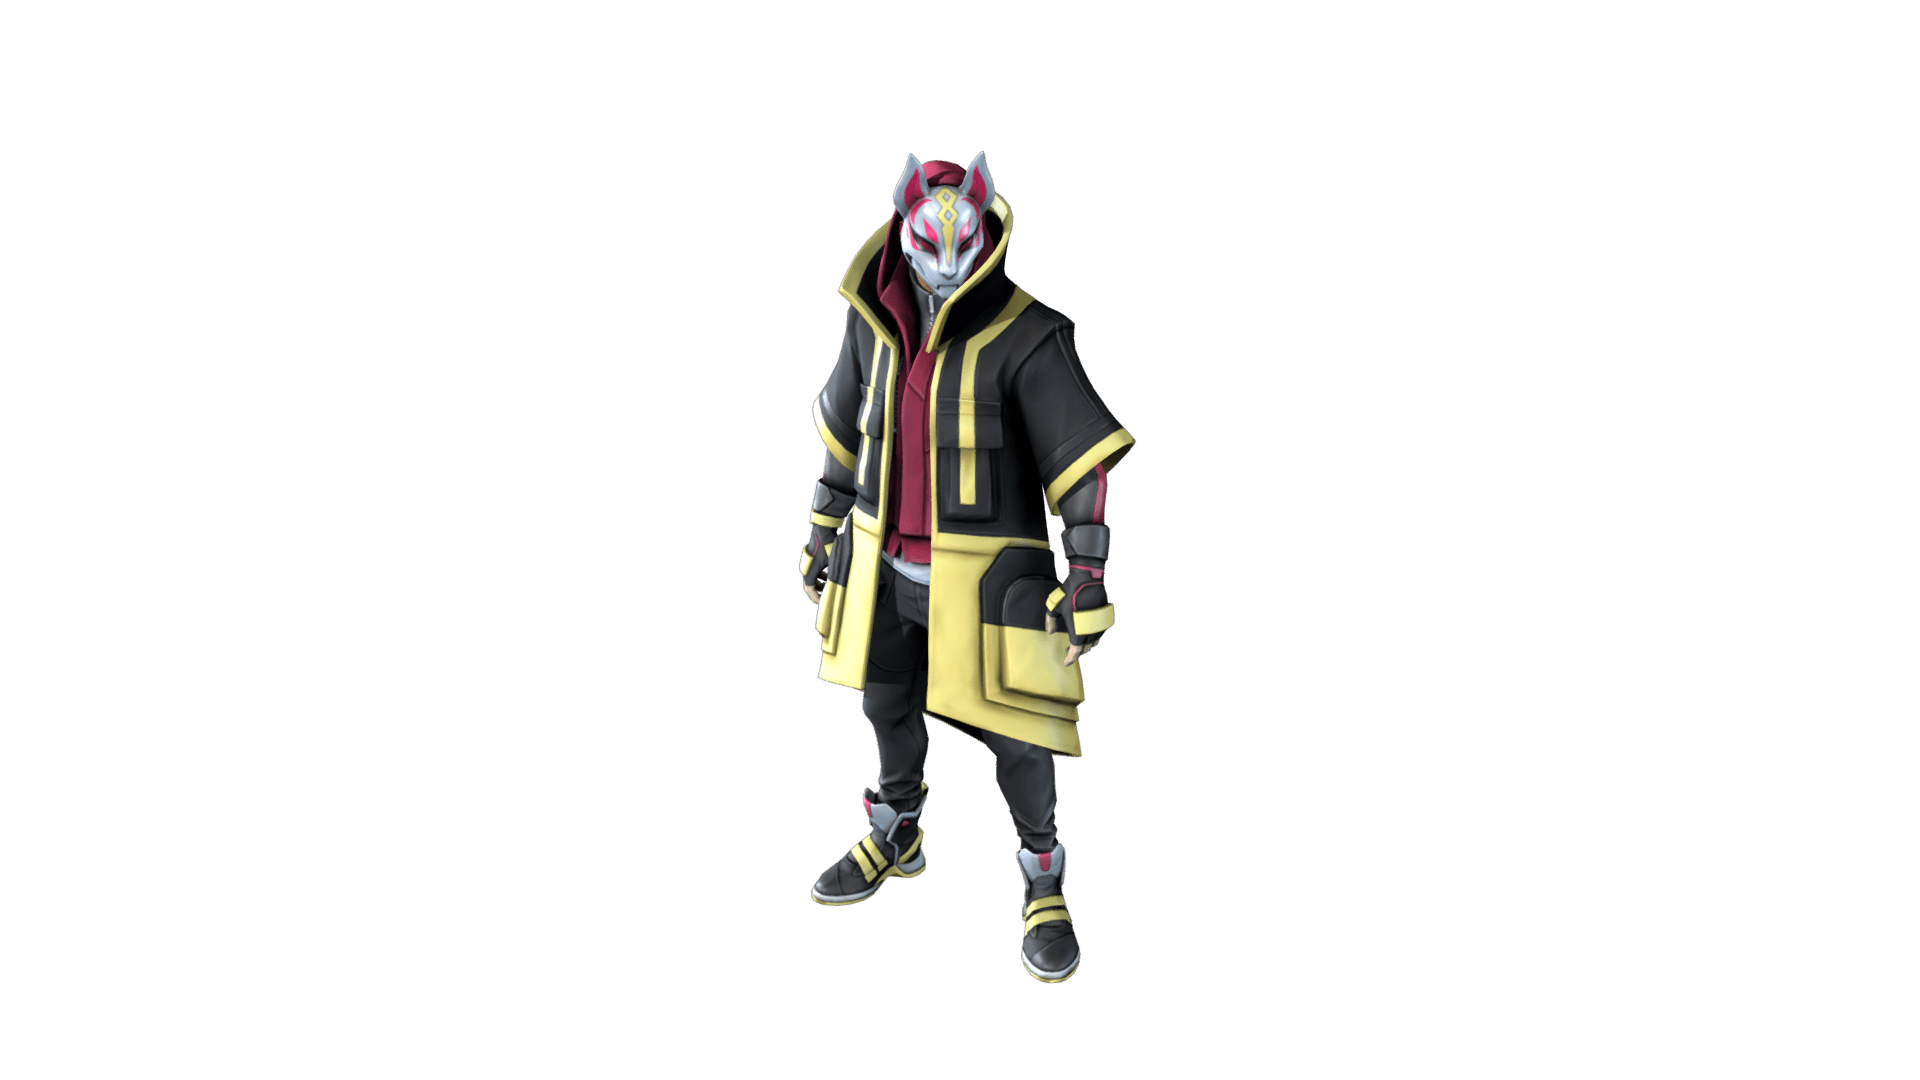 Drift Fortnite Outfit Skin How to Upgrade, Stages, Details.